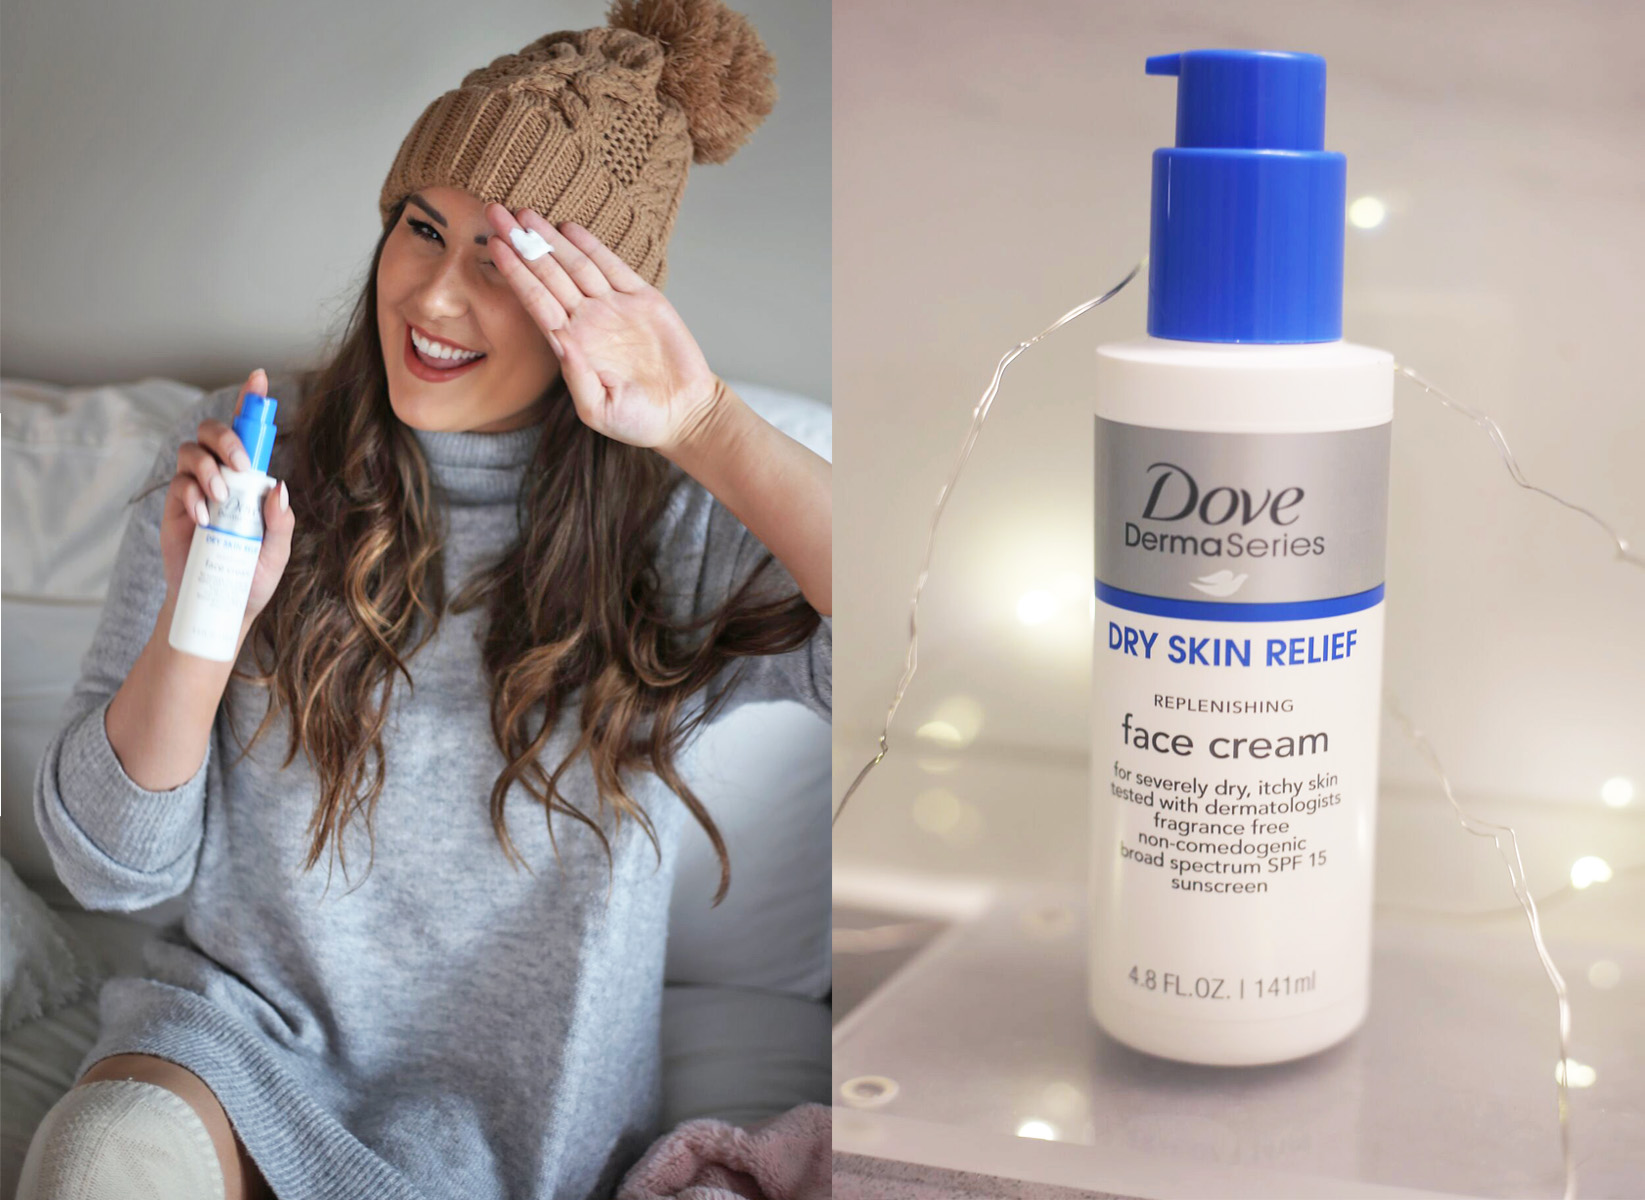 Mash Elle beauty blogger | Dove Skin | Skincare tips | how to have healthy skin | winter skin | winter style